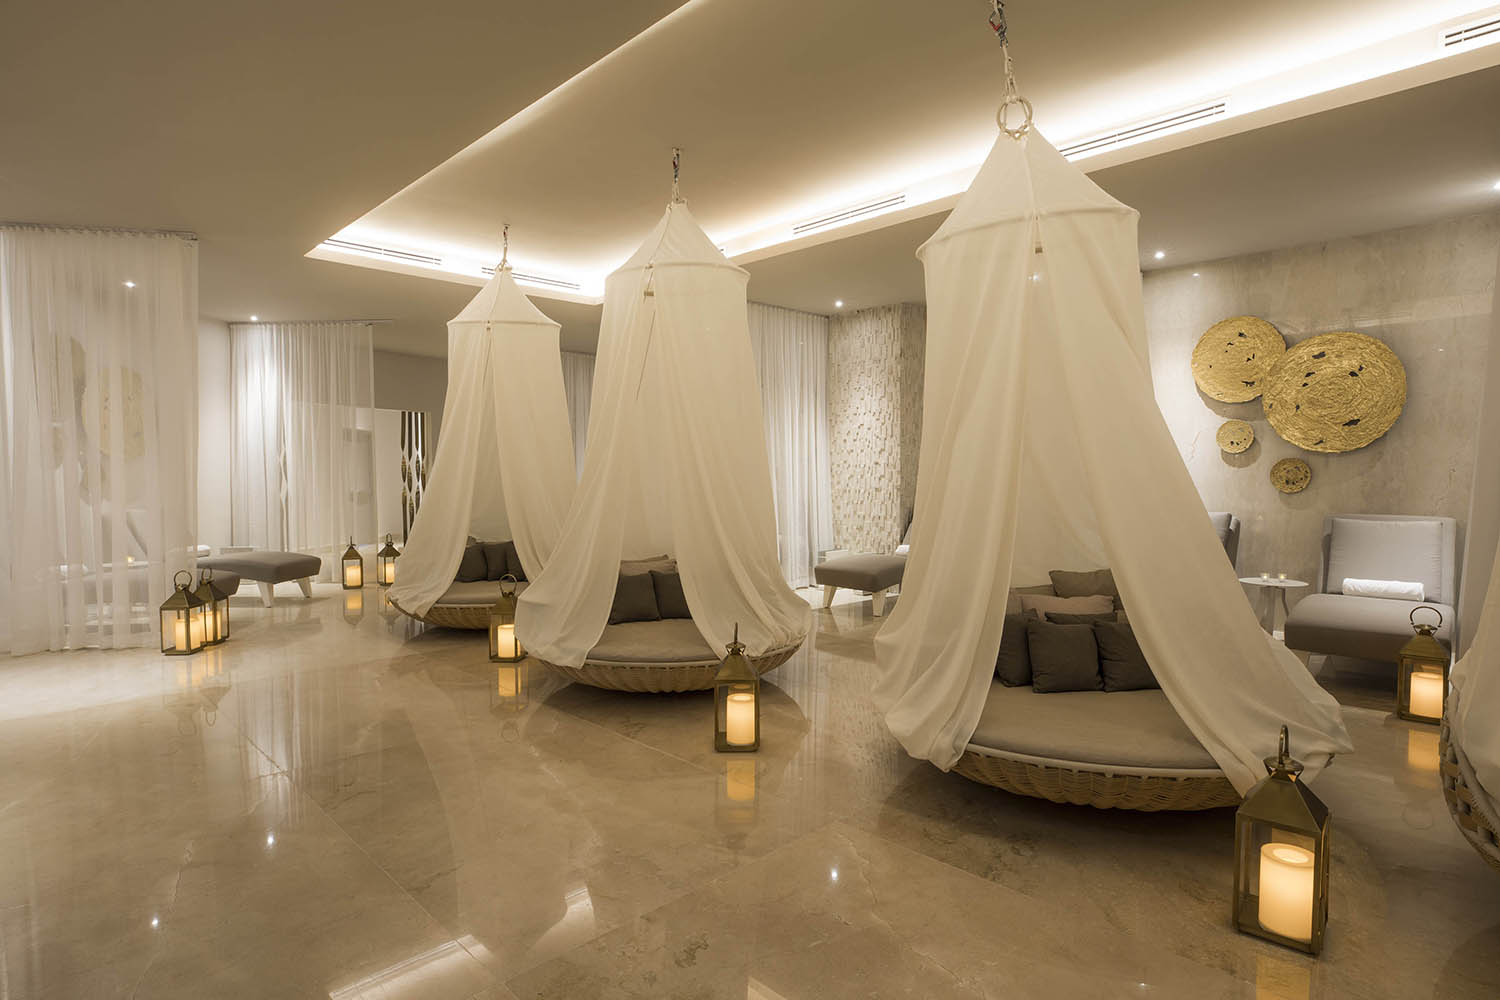 Stylish lounging beds in the spa's waiting area.